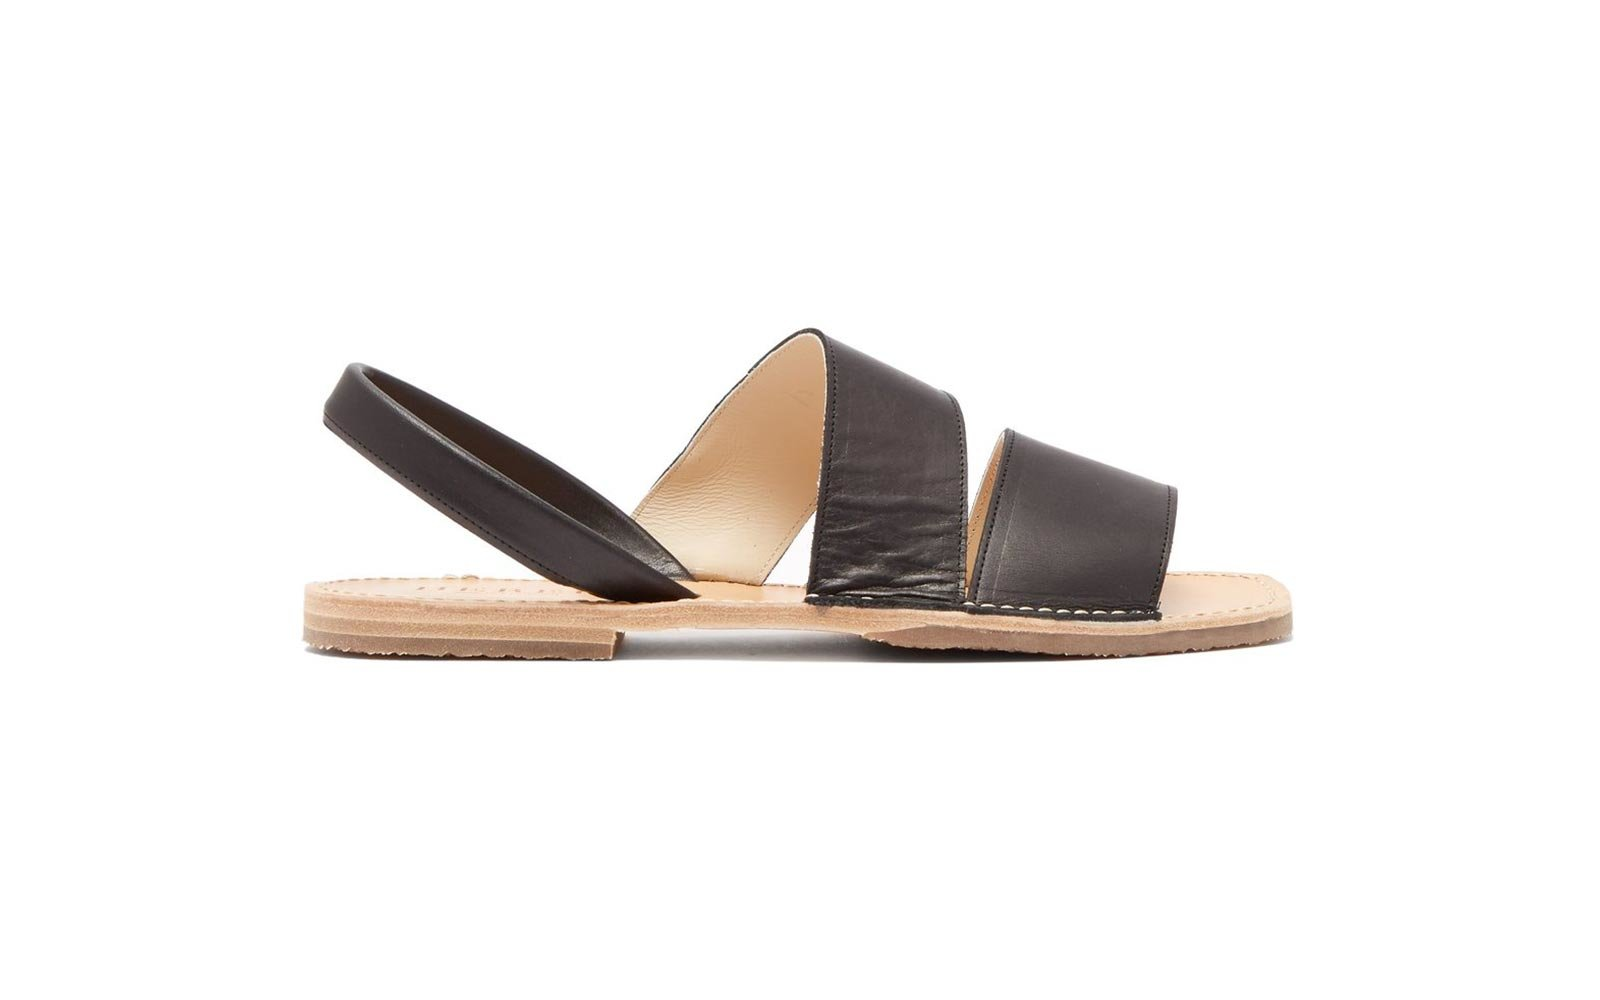 Hereu Aloc Leather Sandals